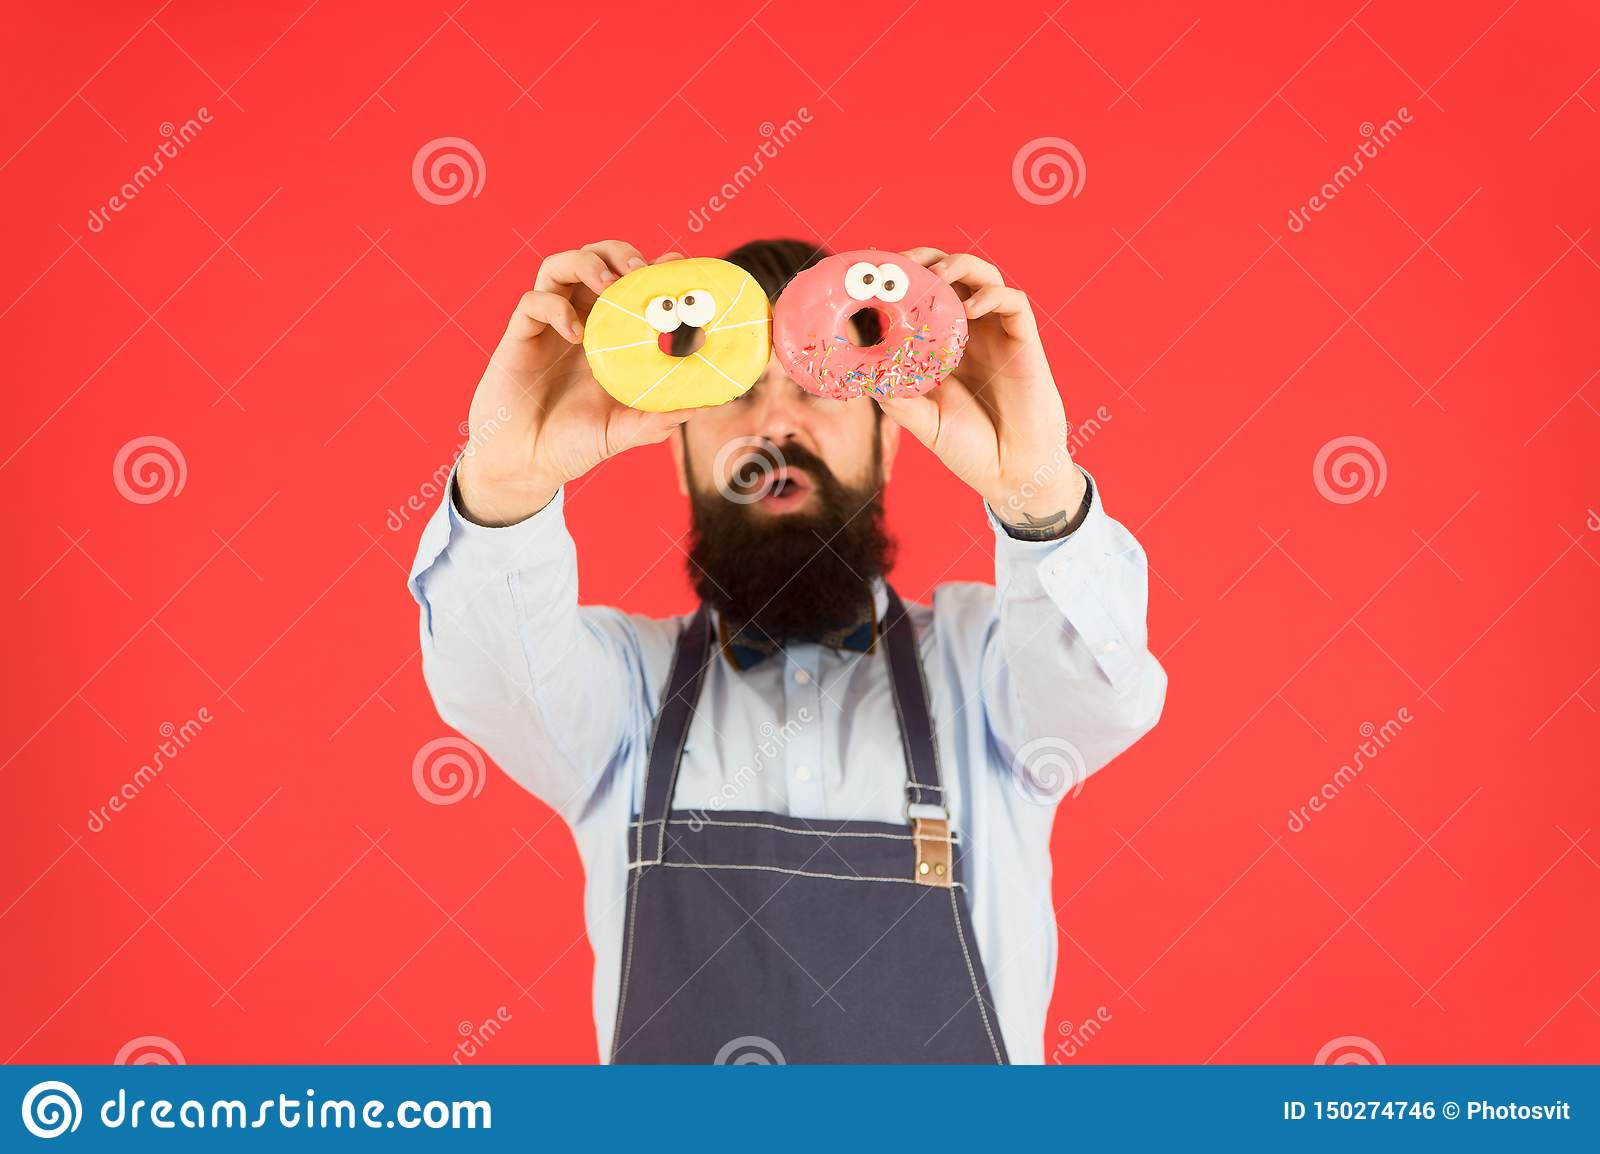 Sweets and cakes. Junk food. Hipster bearded baker hold donuts. Eat donut. Cheerful mood. Doughnut calories. Glazed